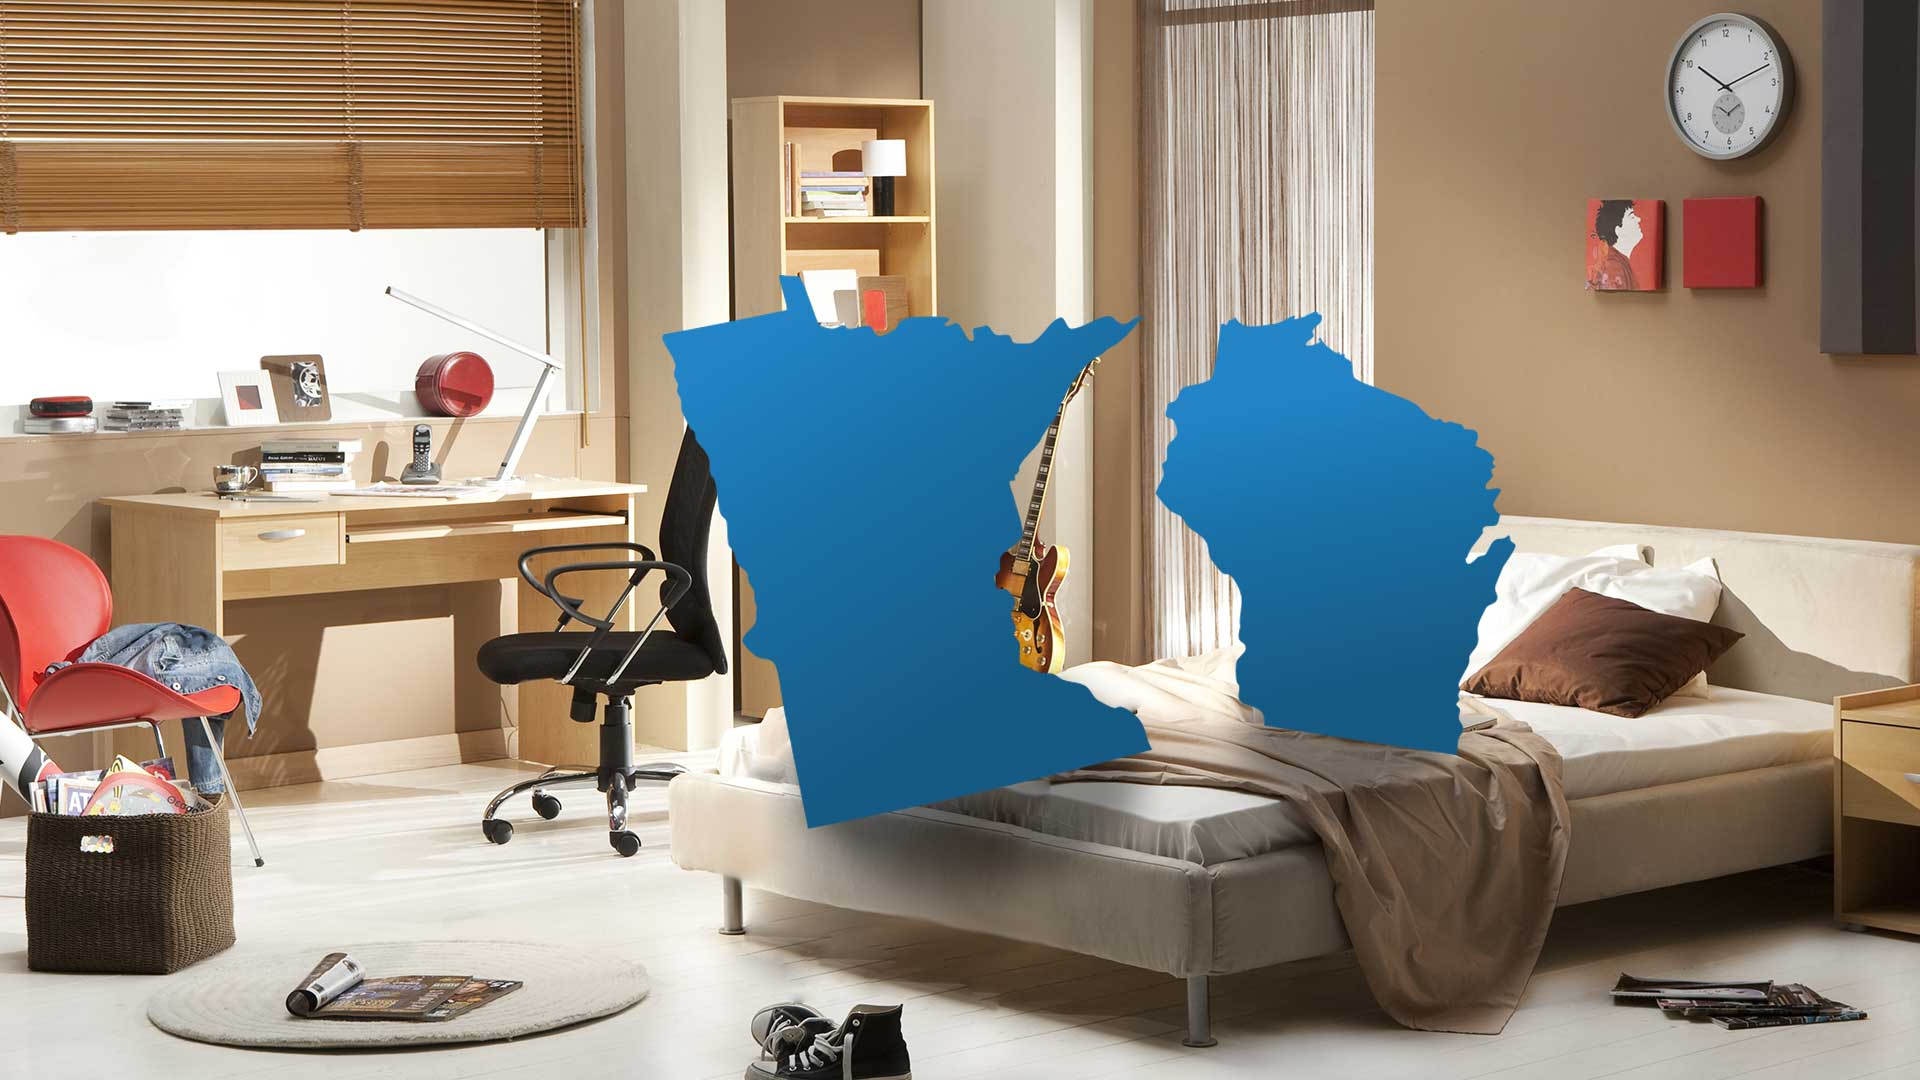 Minnesota-Asks-Wisconsin-if-it-Can-Be-Little-Spoon-for-Once-2.jpg